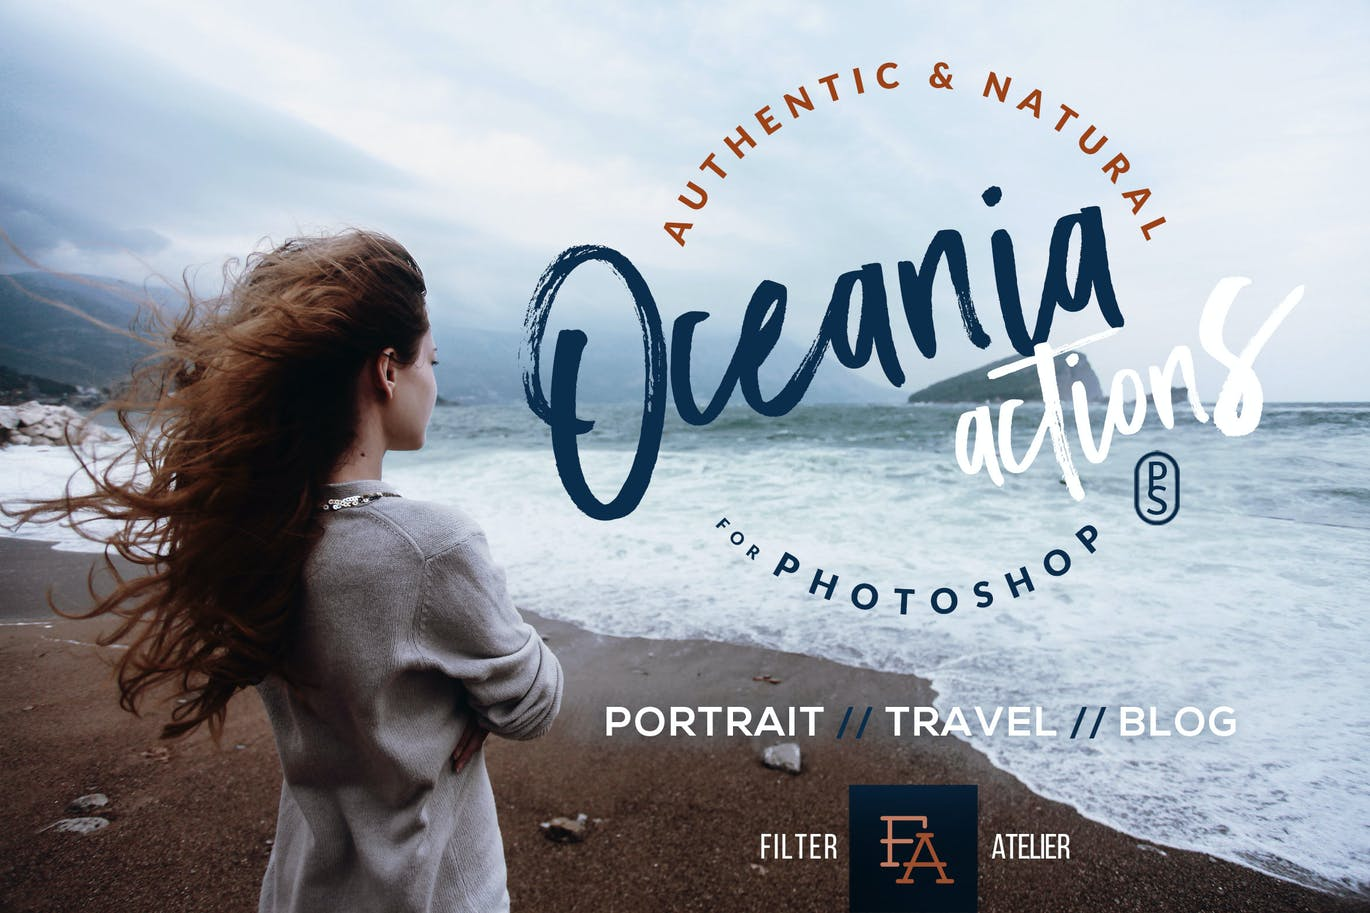 Oceania-Photoshop-1 - 50+ BEST Photo Editing Photoshop Actions [year]